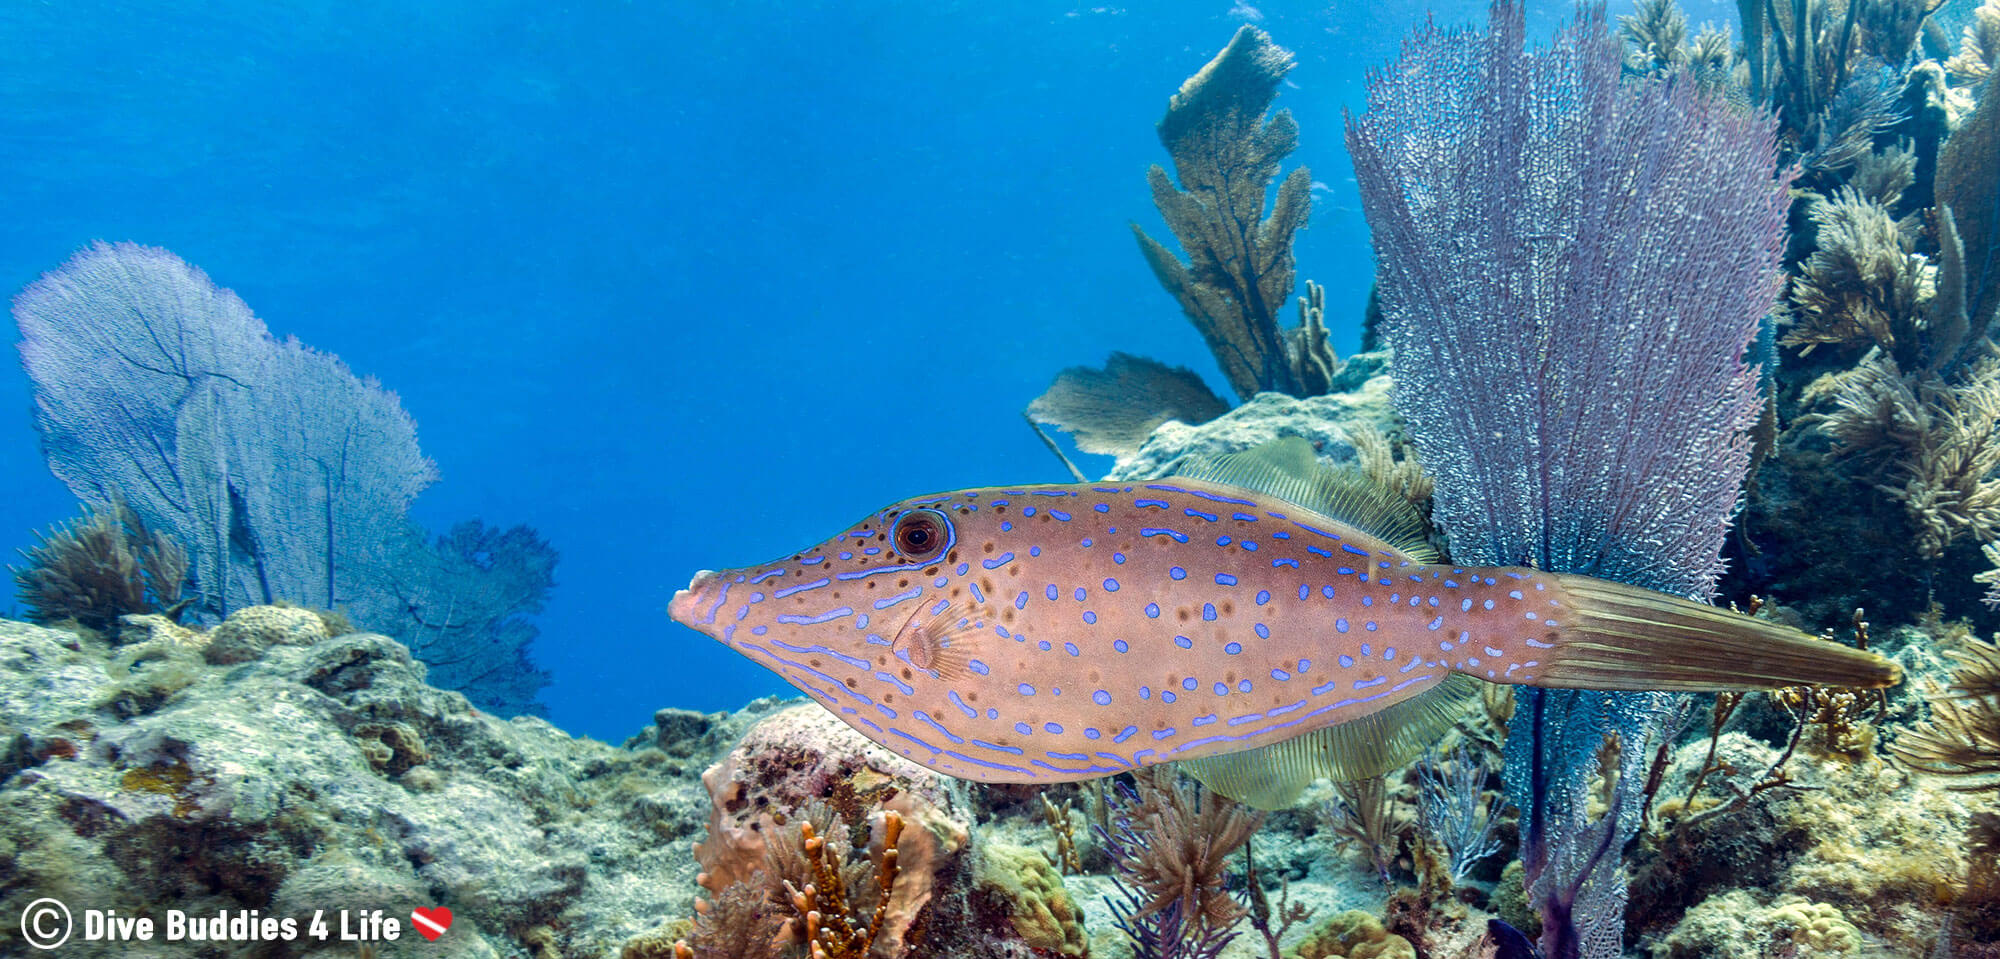 A Purple File Fish Swimming On A Key Largo Reef In The Florida Keys, USA